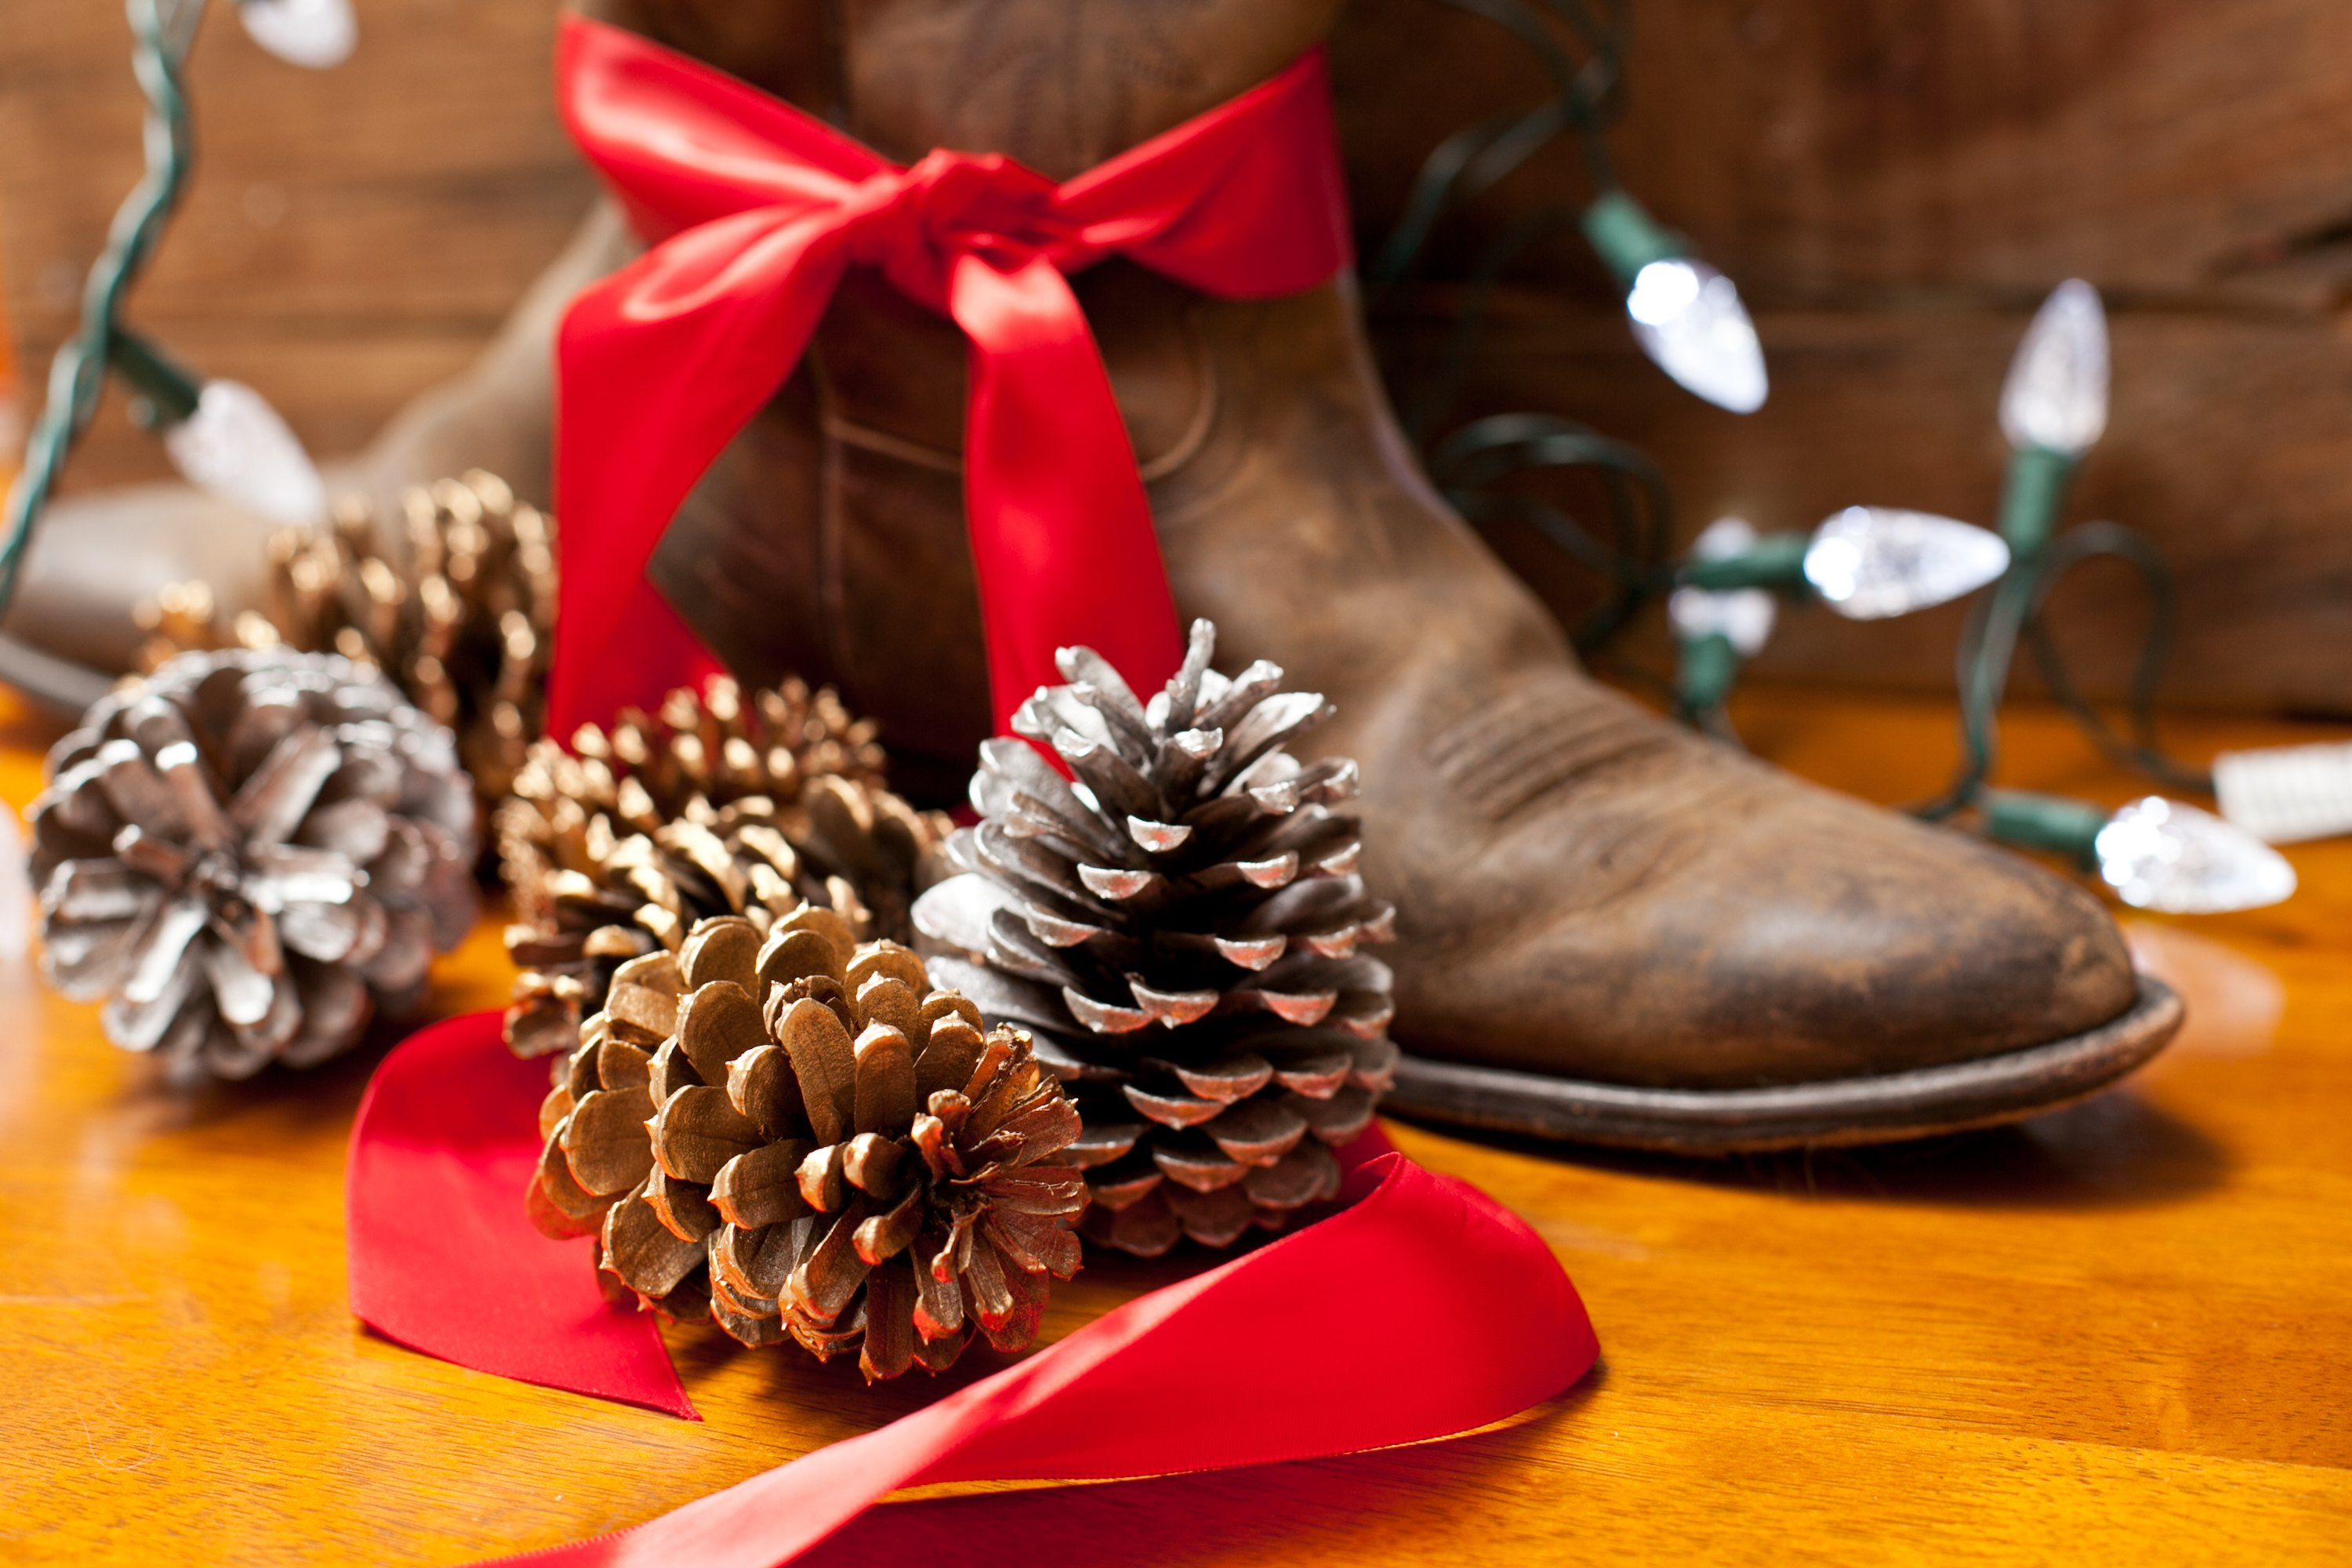 Homemade Cowboy Christmas Decorations (with Pictures) | eHow